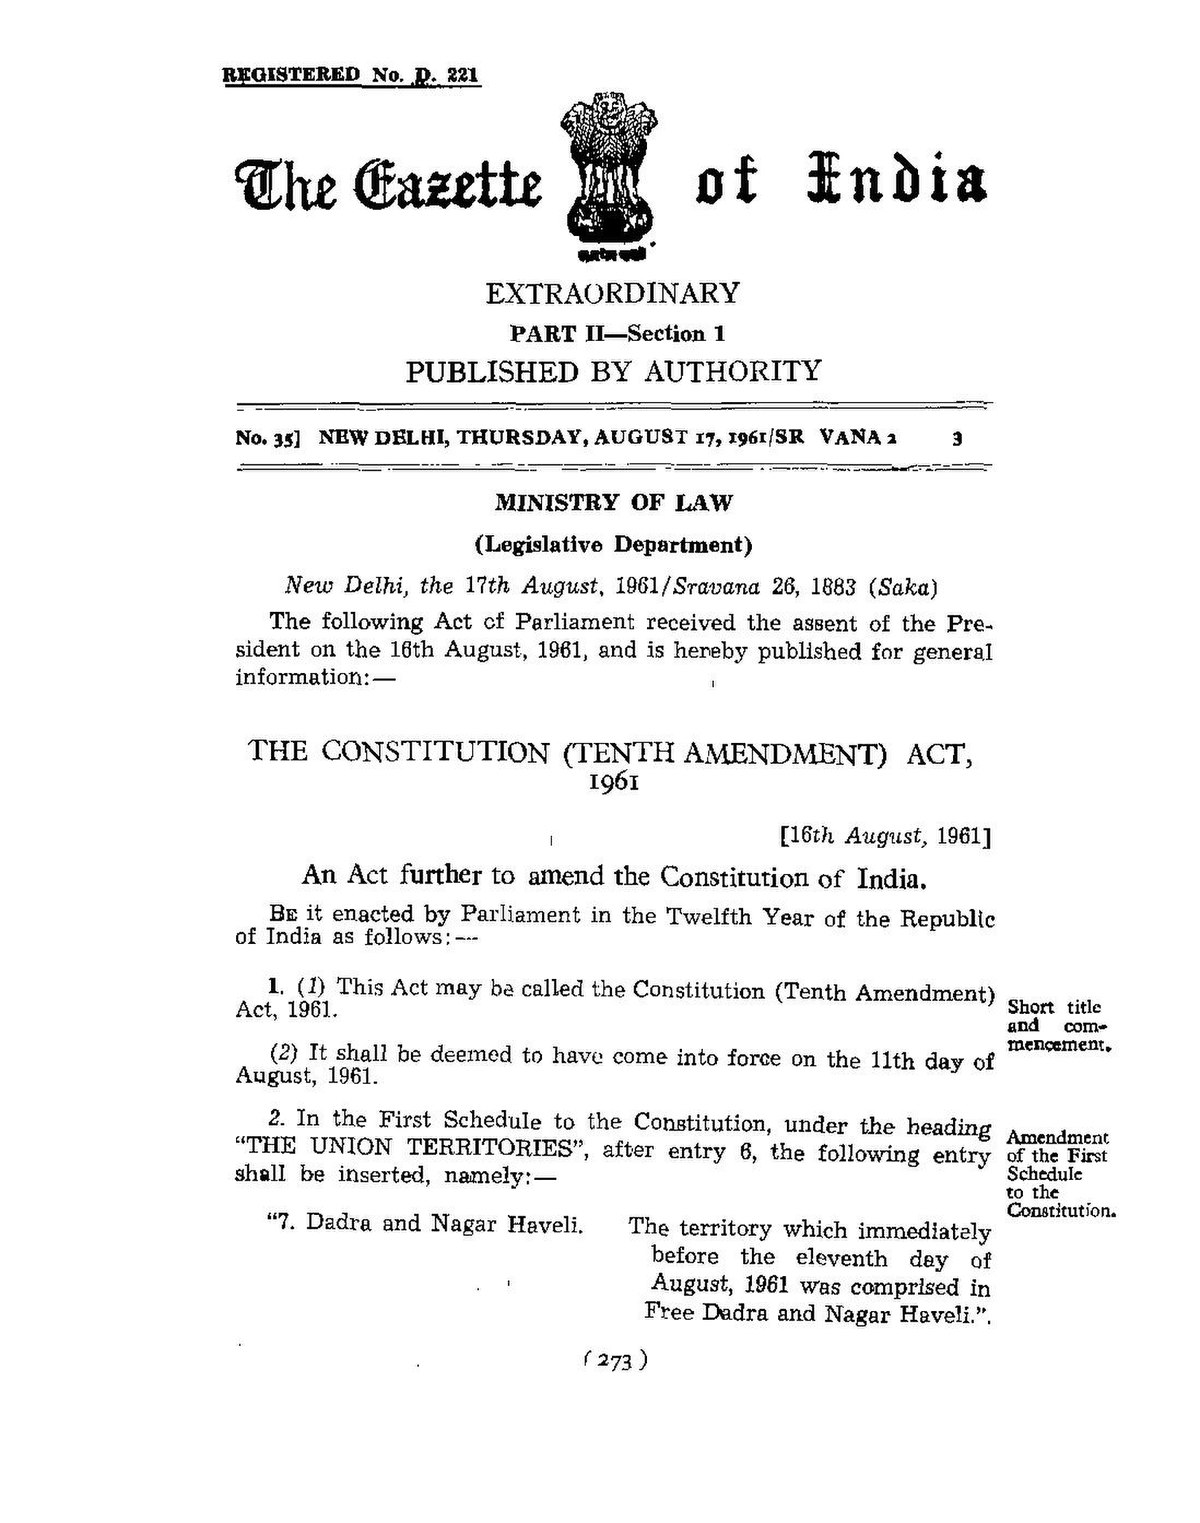 20th amendment of indian constitution